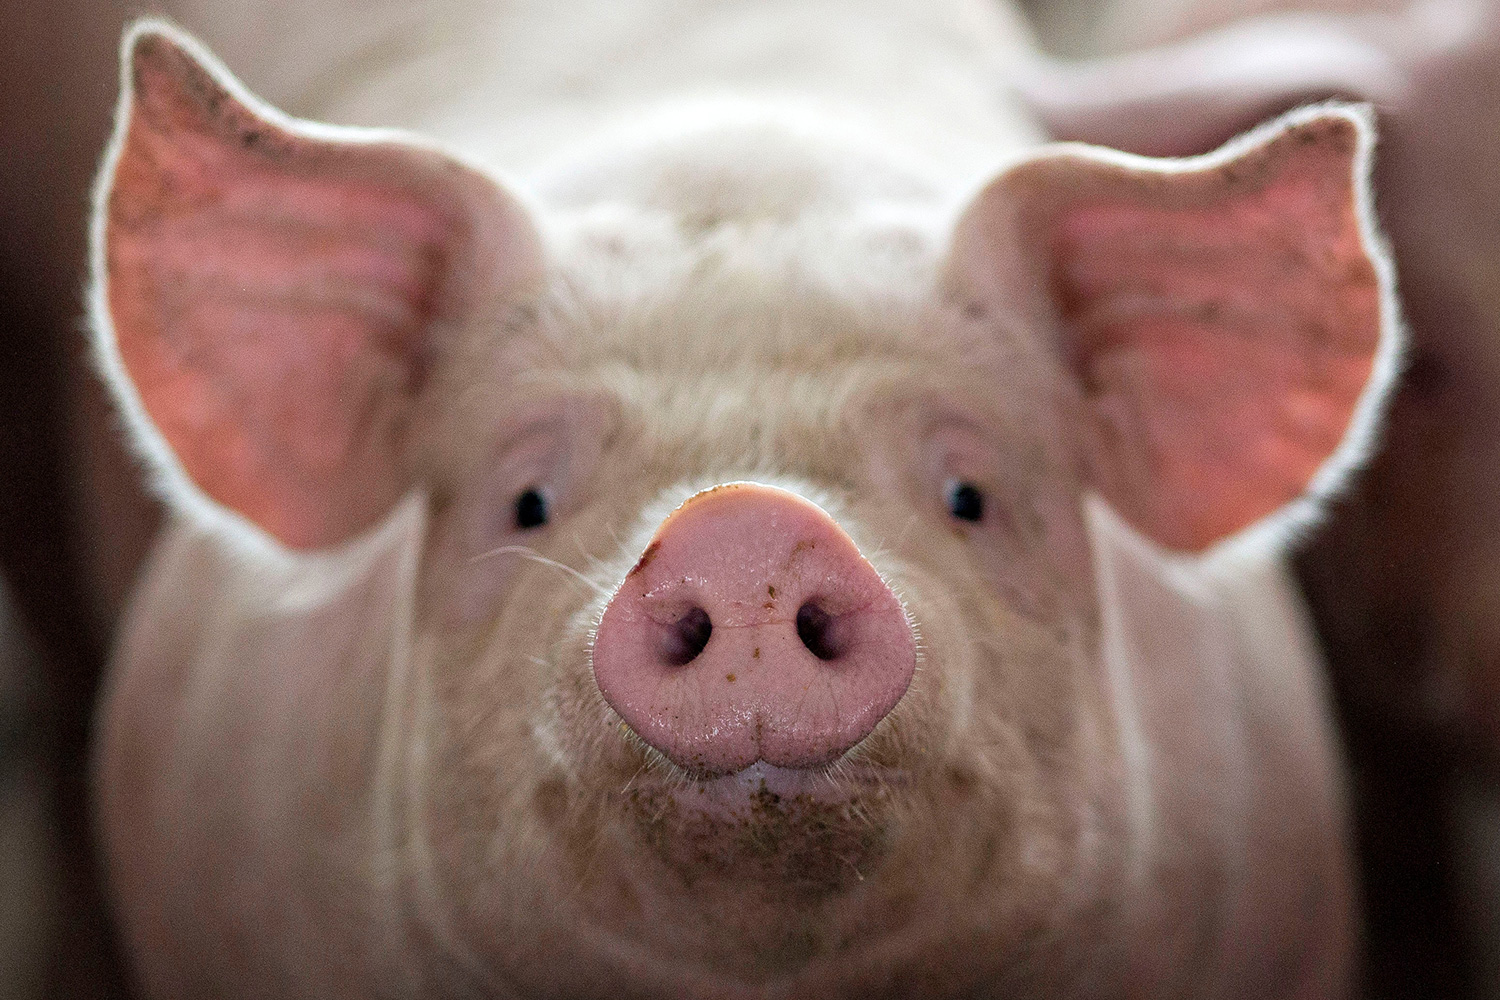 Picture shows a pig standing close to the camera and filling the frame with its ears and snout.